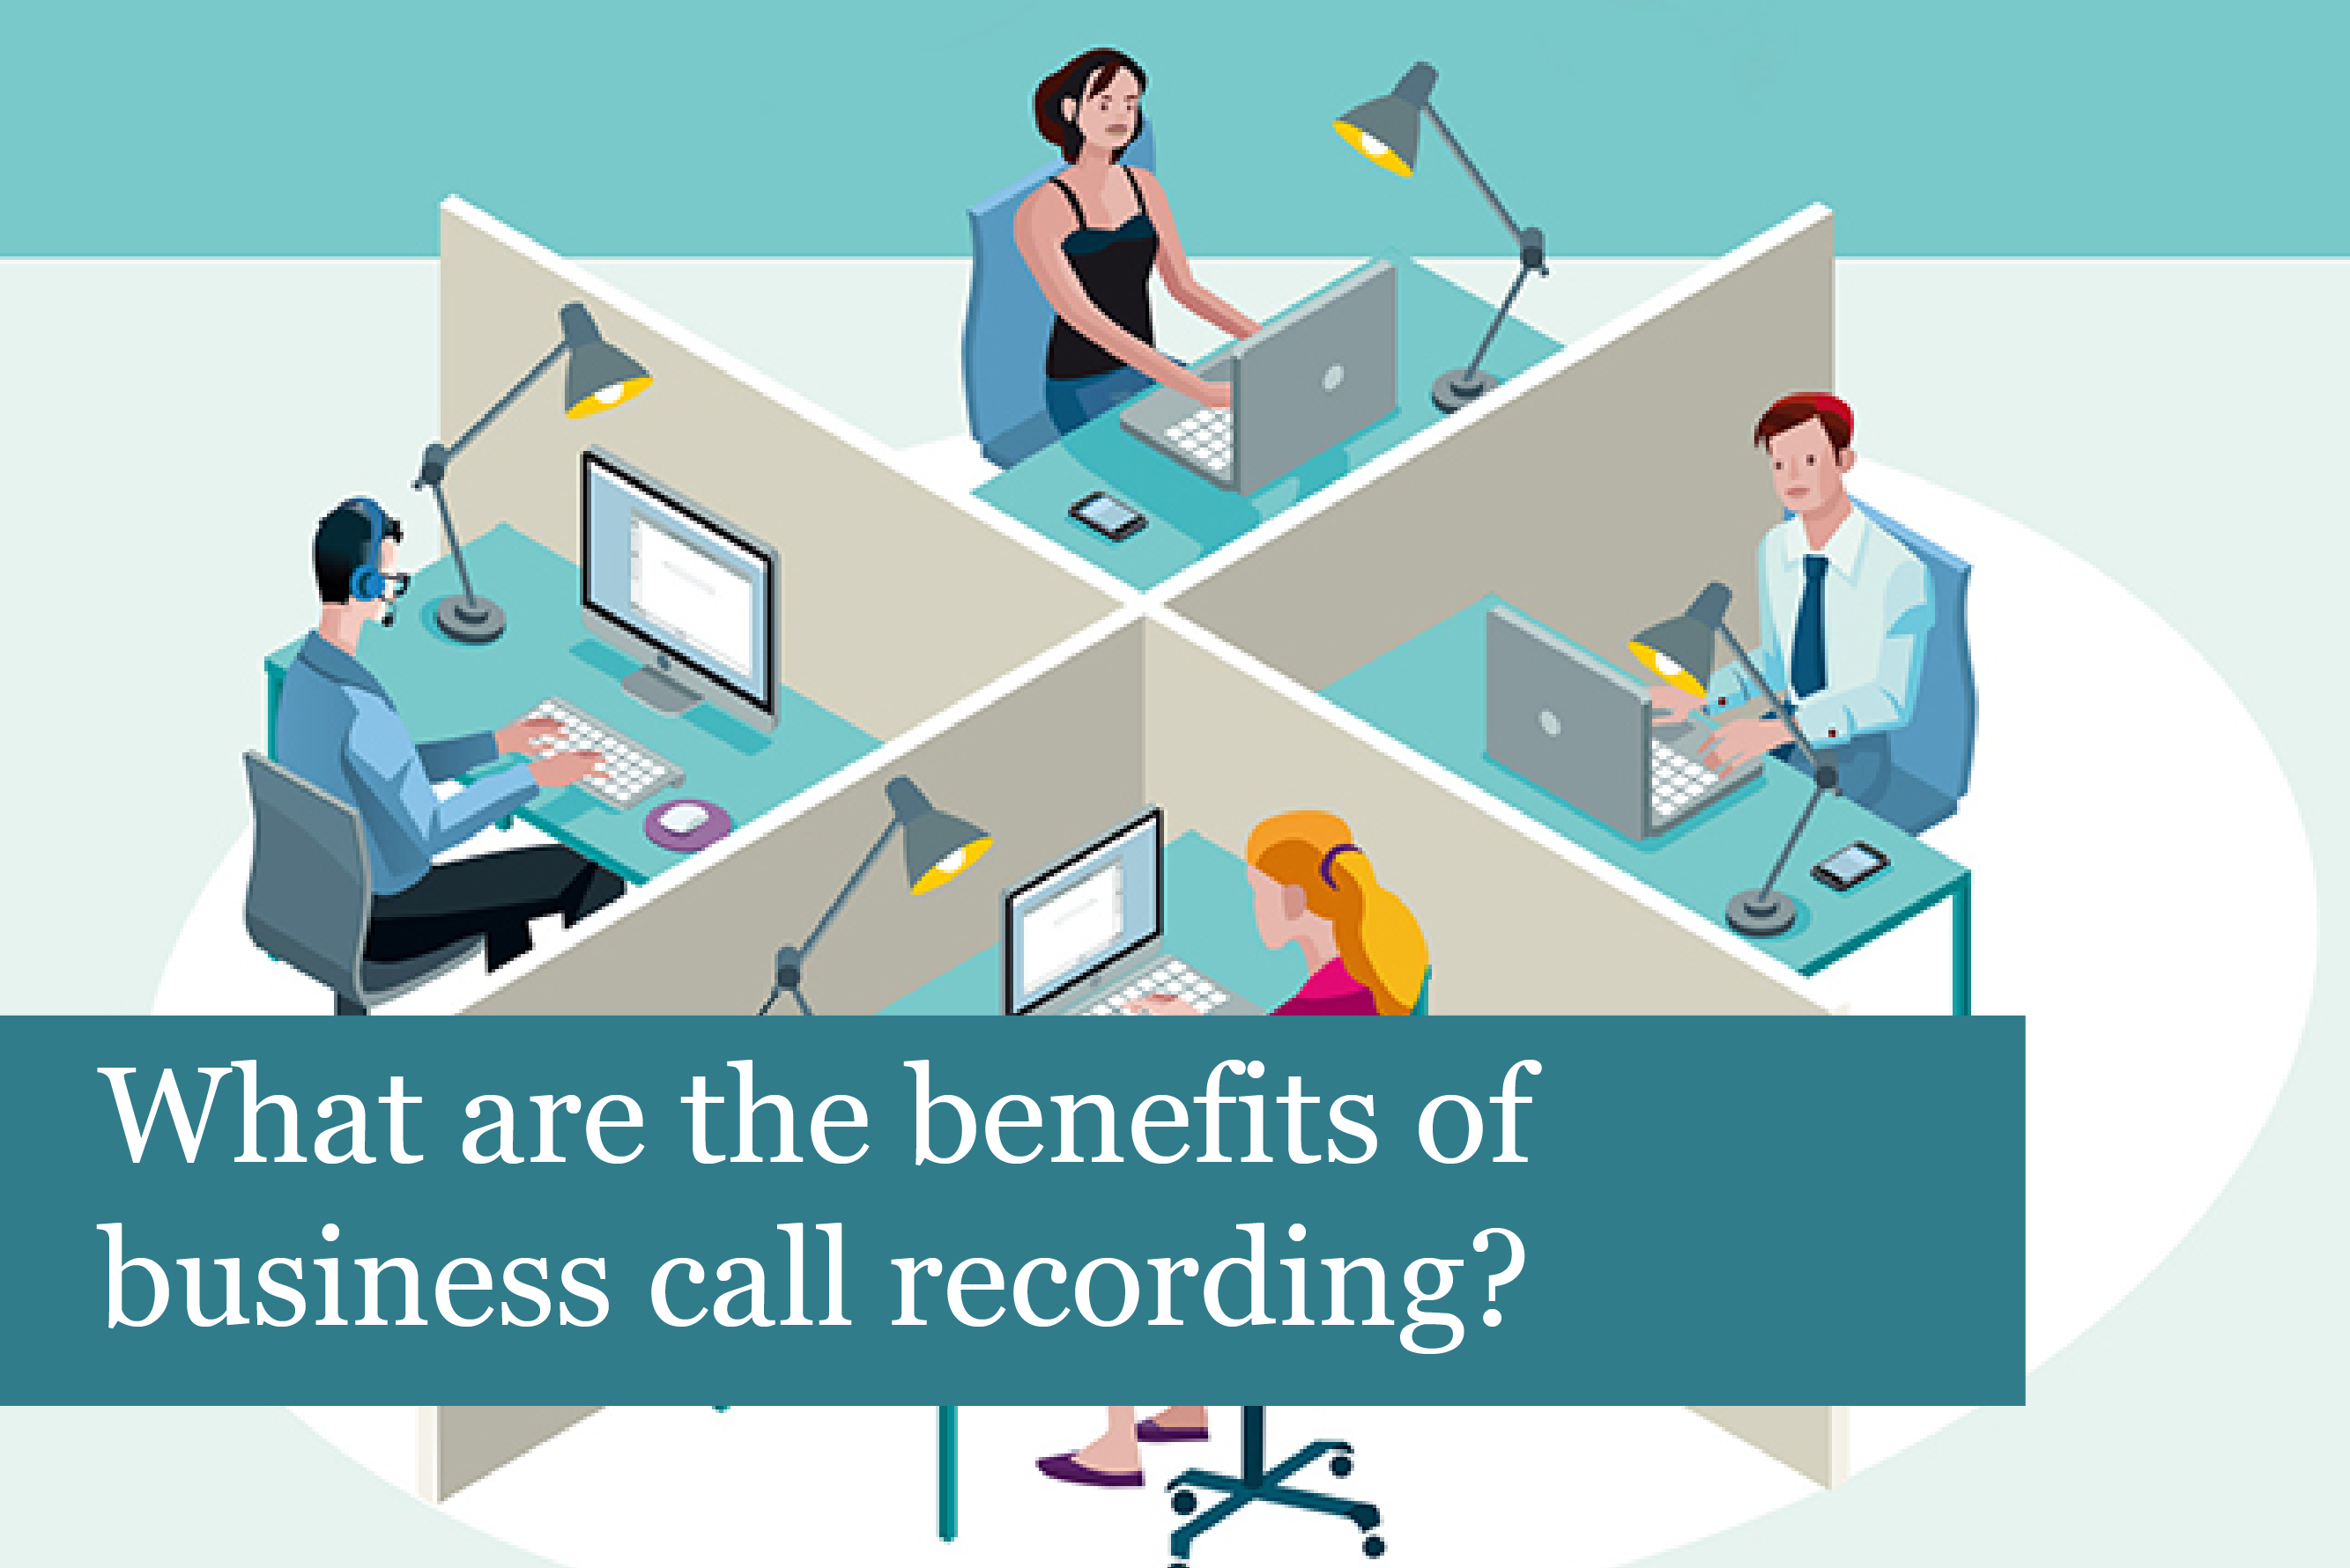 What are the benefits of business call recording?